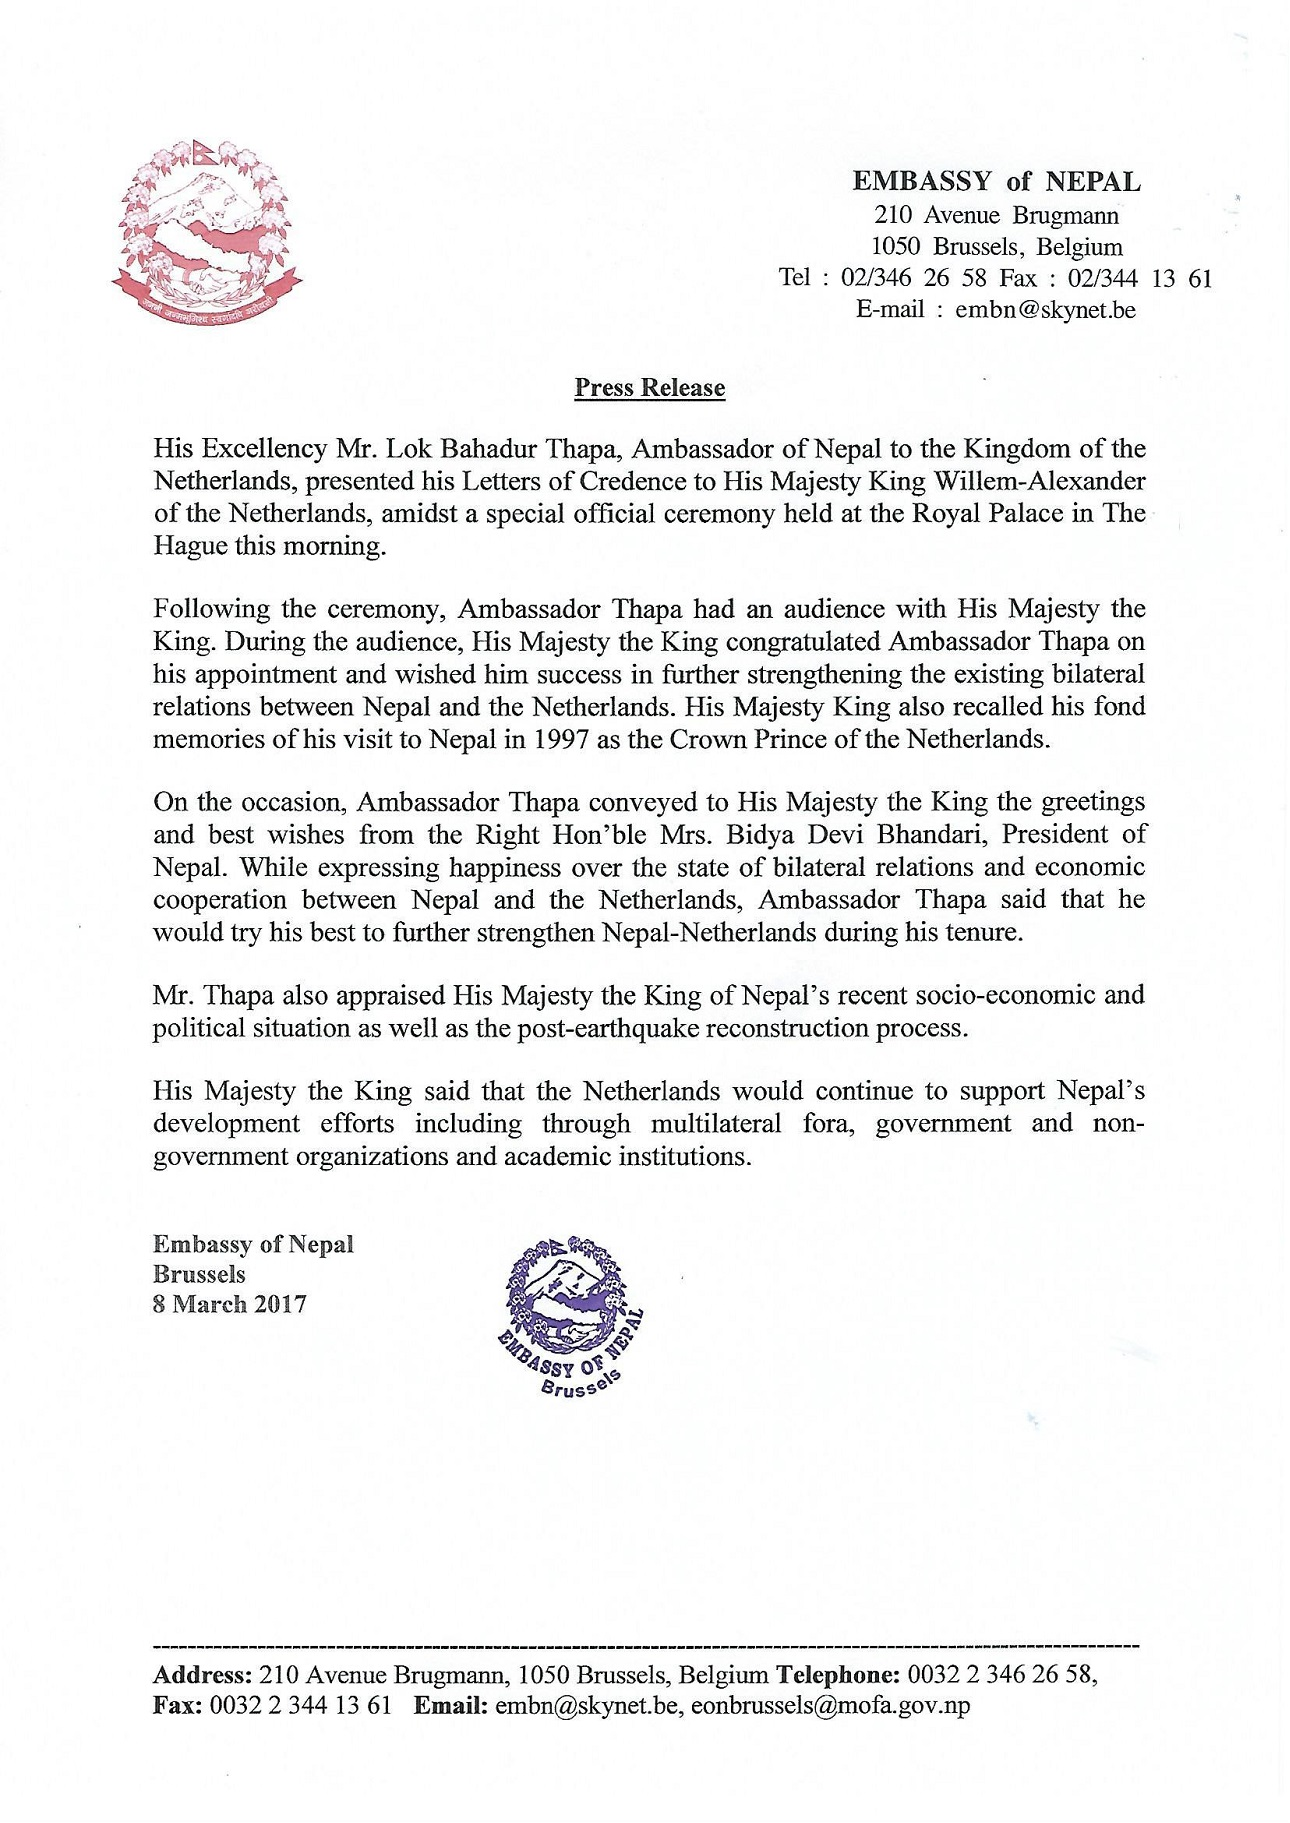 Press Release Issued By The Embassy Of Nepal Brussels On